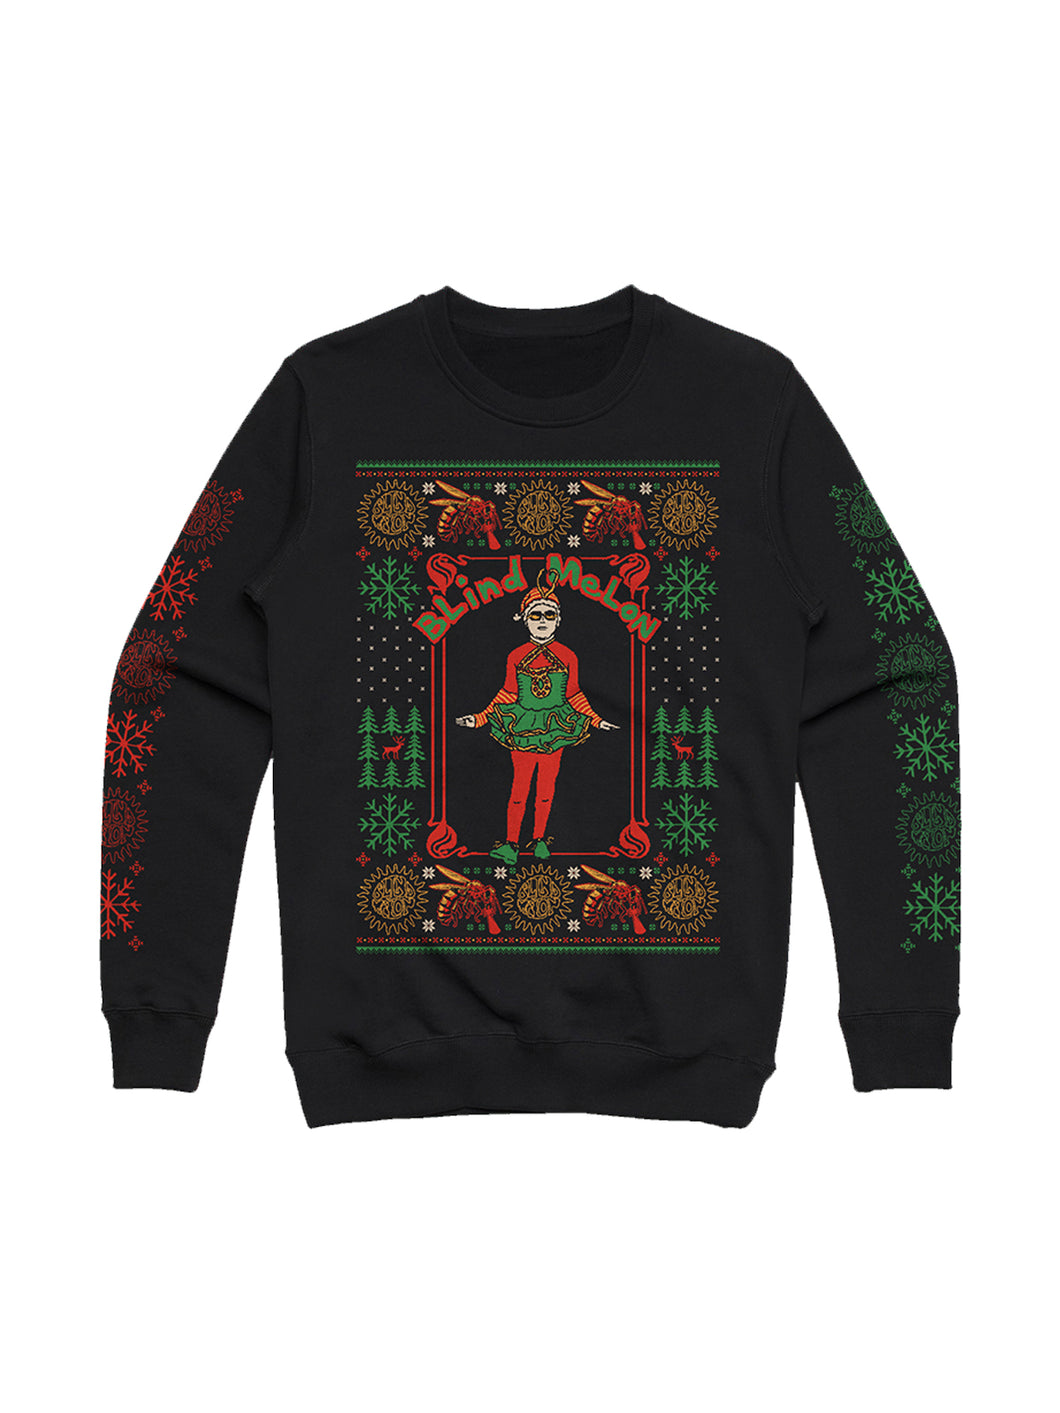 2018 Holiday Sweater (Black)